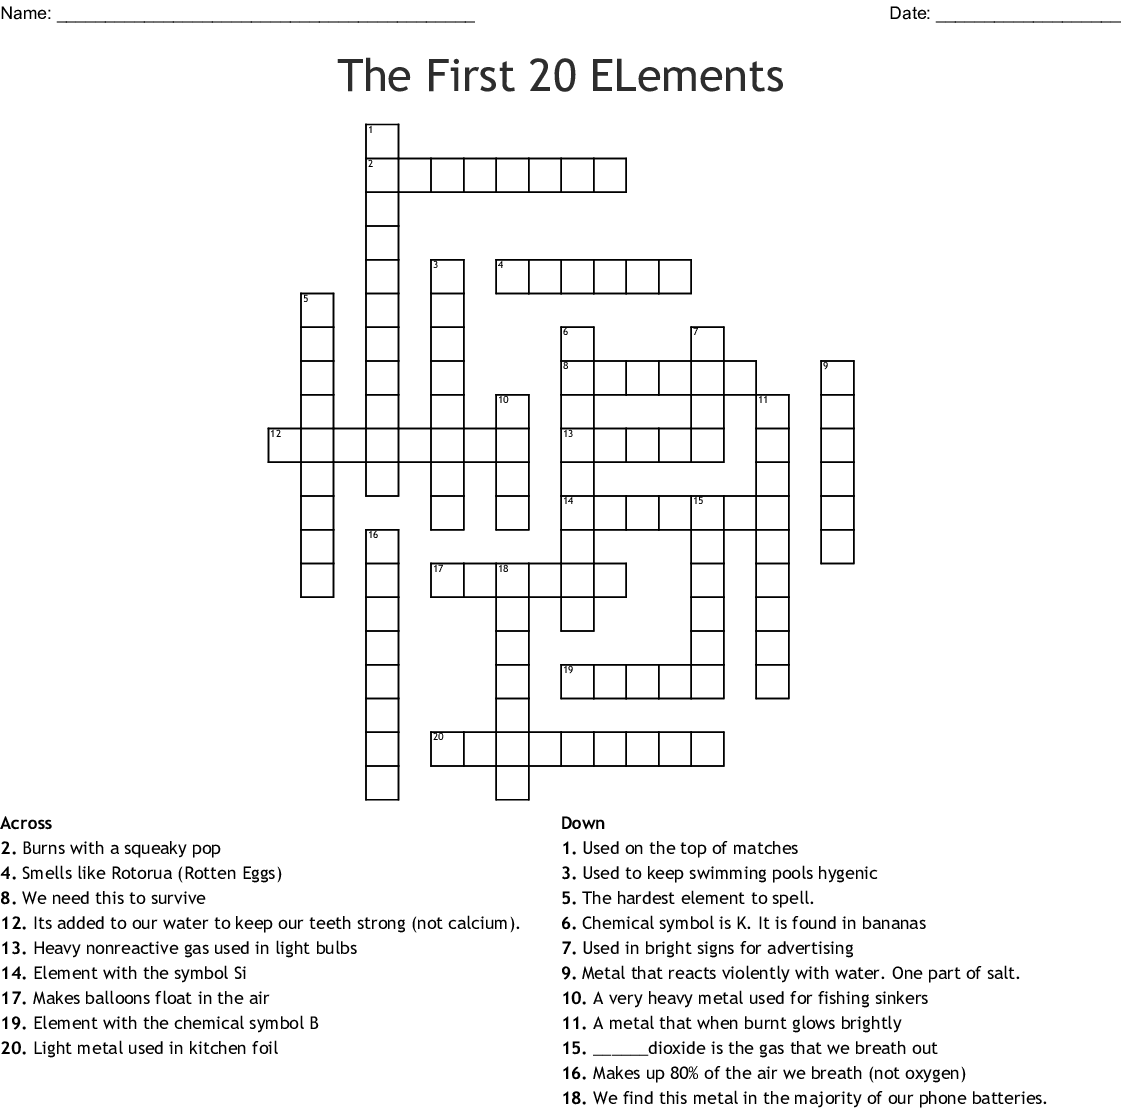 The First 20 Elements Crossword